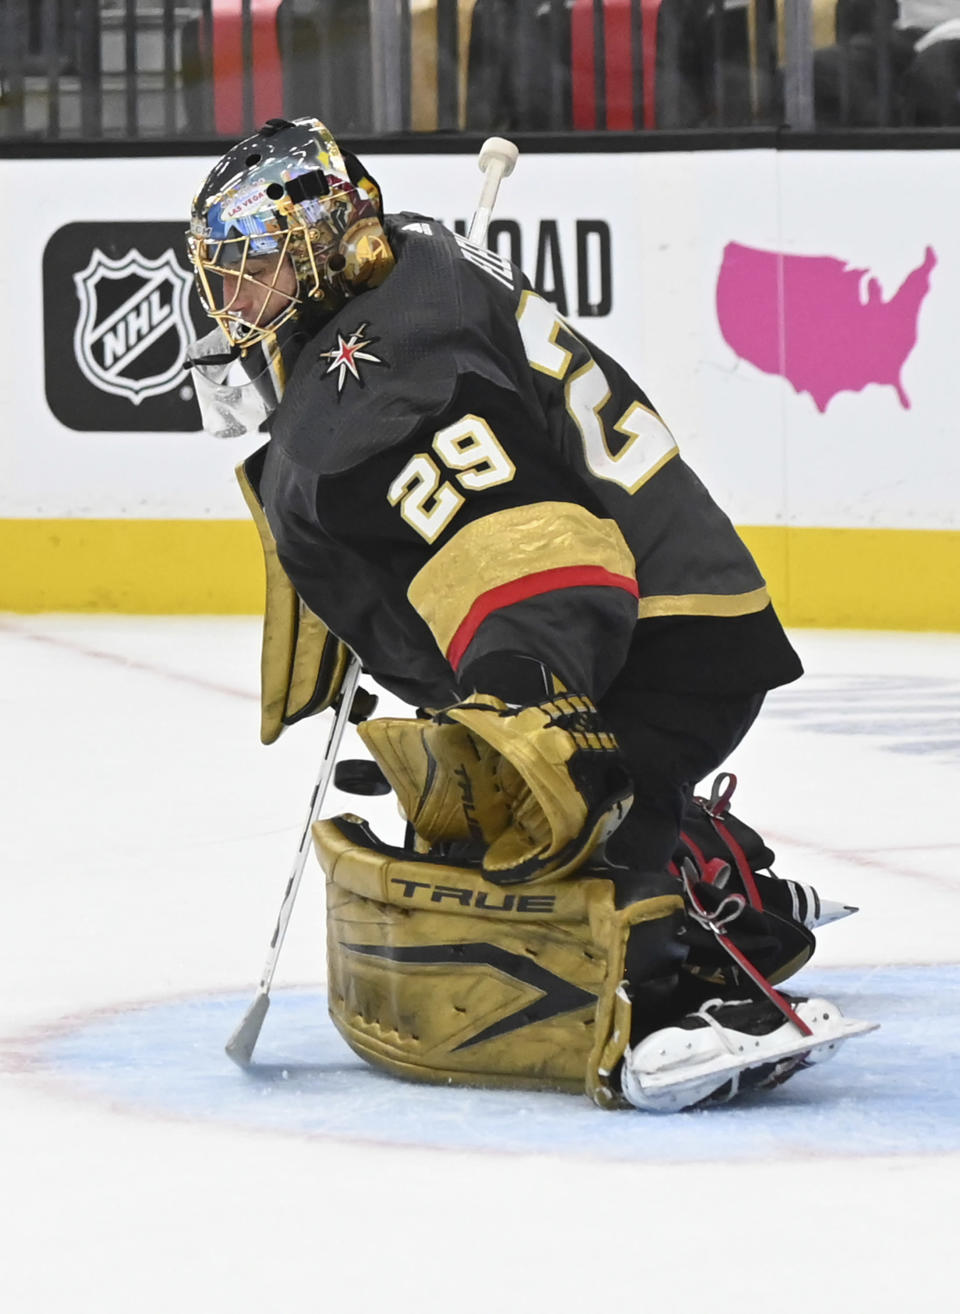 Vegas Golden Knights goaltender Marc-Andre Fleury (29) stops the puck during the third period of Game 1 of a first-round NHL hockey playoff series against the Minnesota Wild, Sunday, May 16, 2021, in Las Vegas. (AP Photo/David Becker)